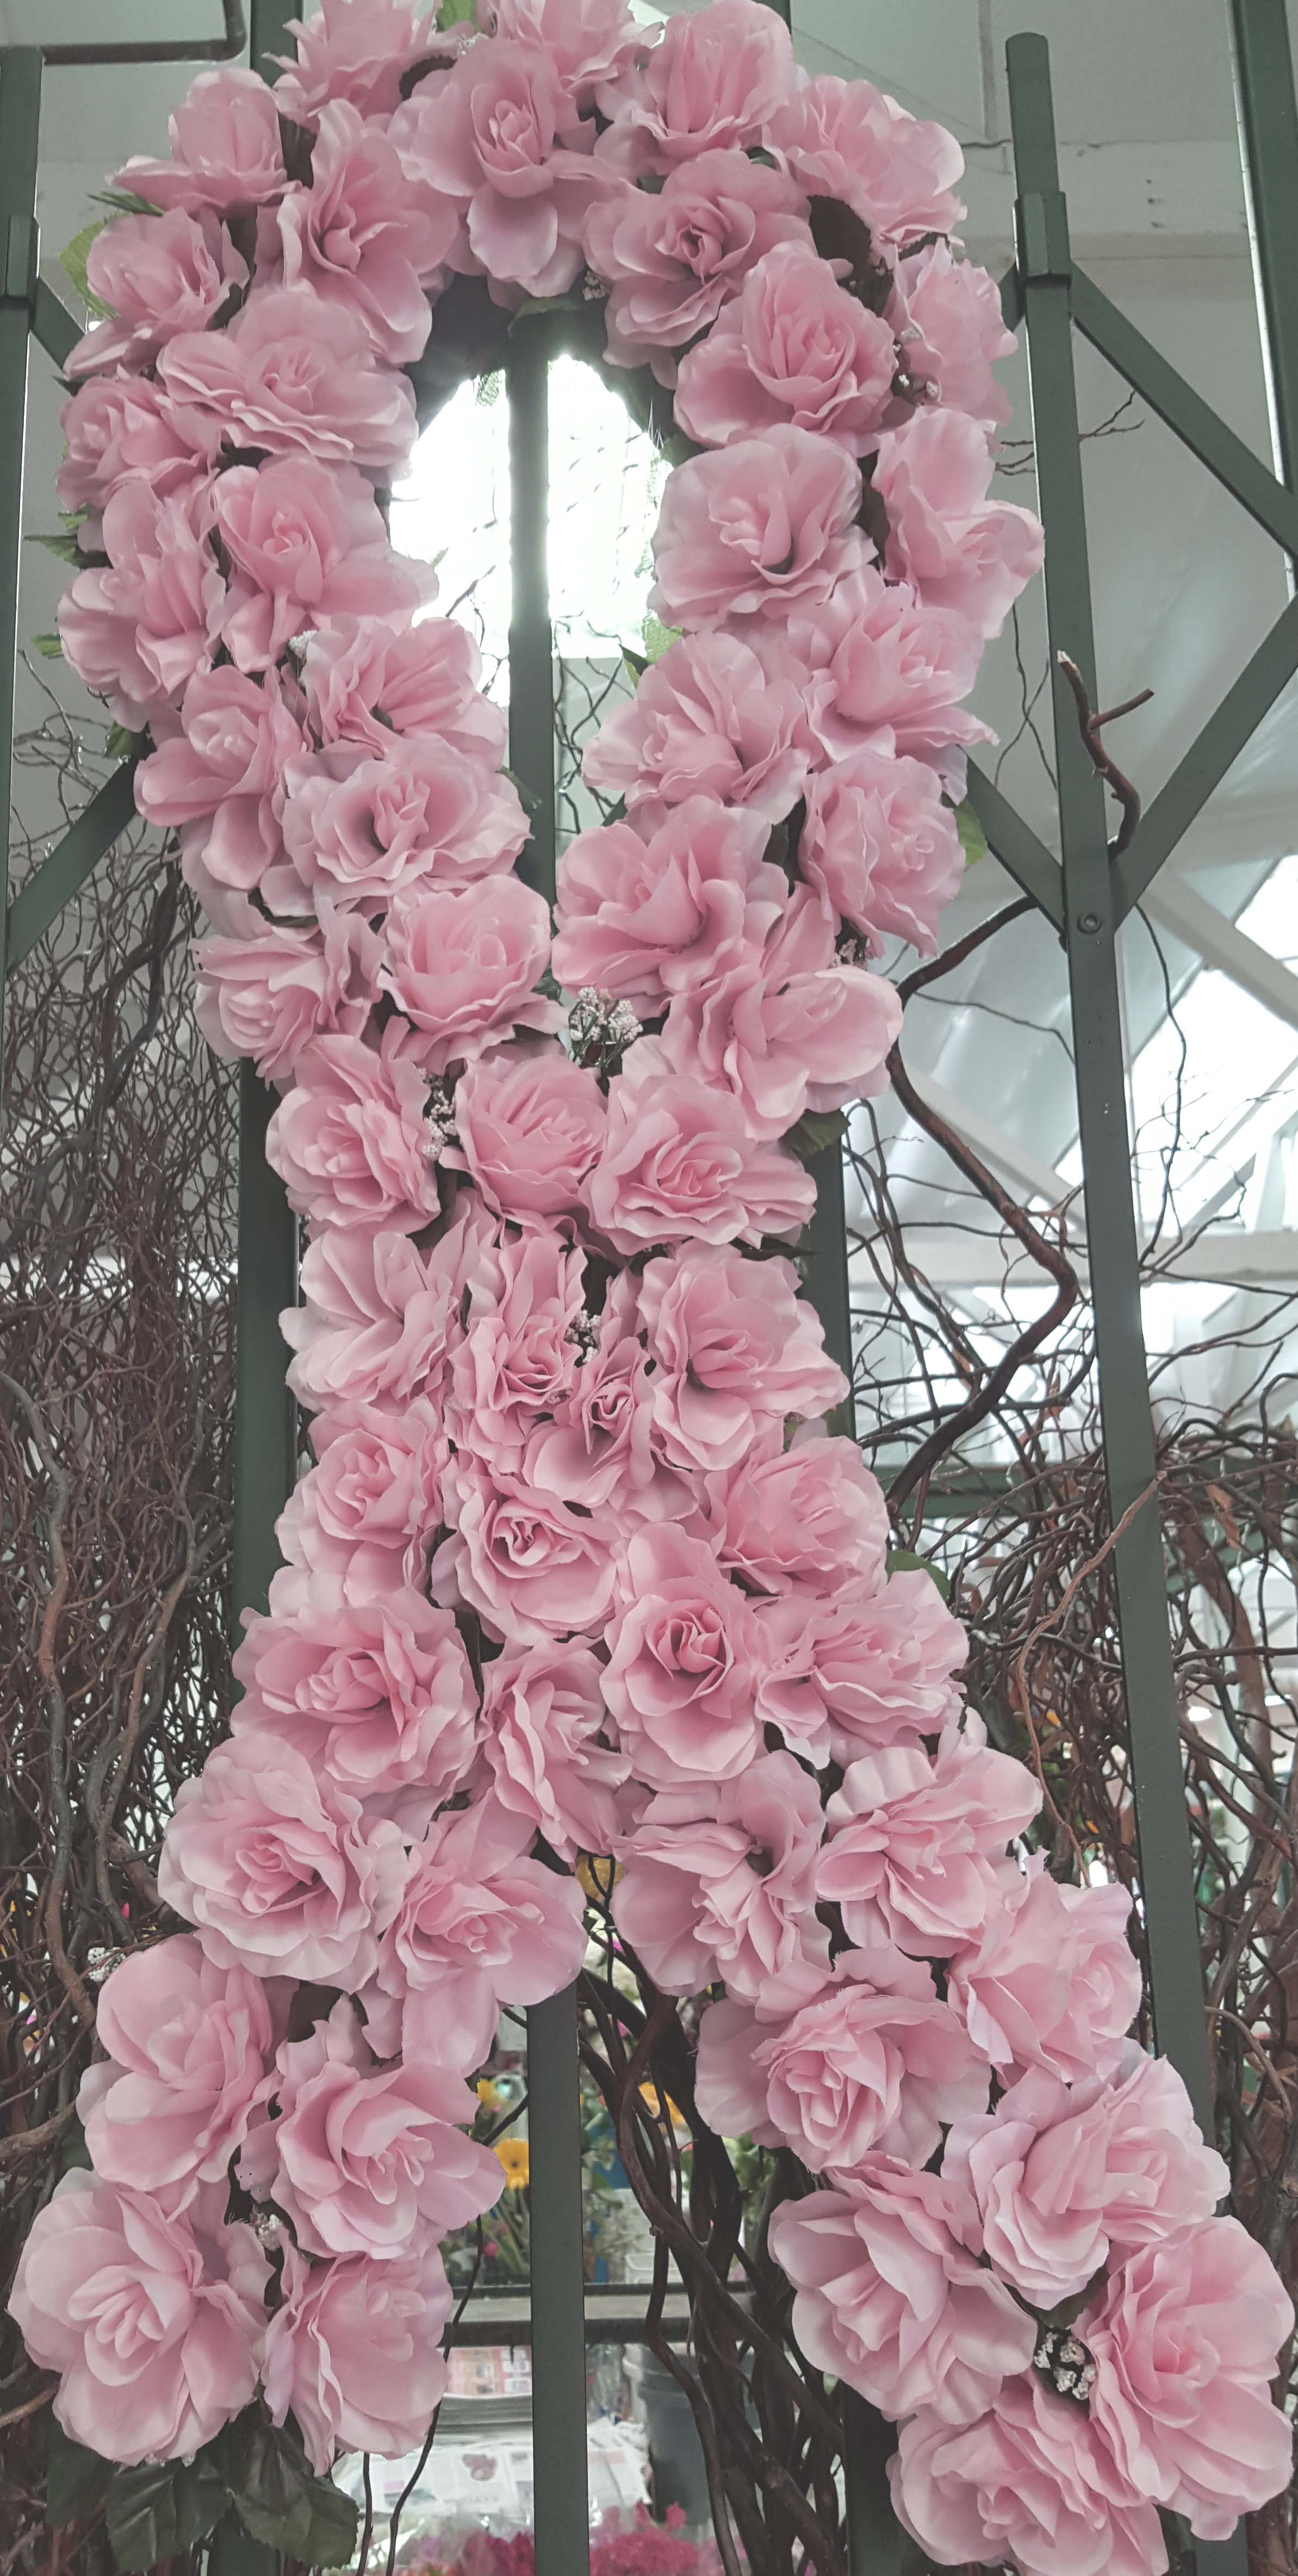 Cfm gives tips to buy cheap funeral flowers in las flower district custom design breast cancer funeral flowers izmirmasajfo Image collections